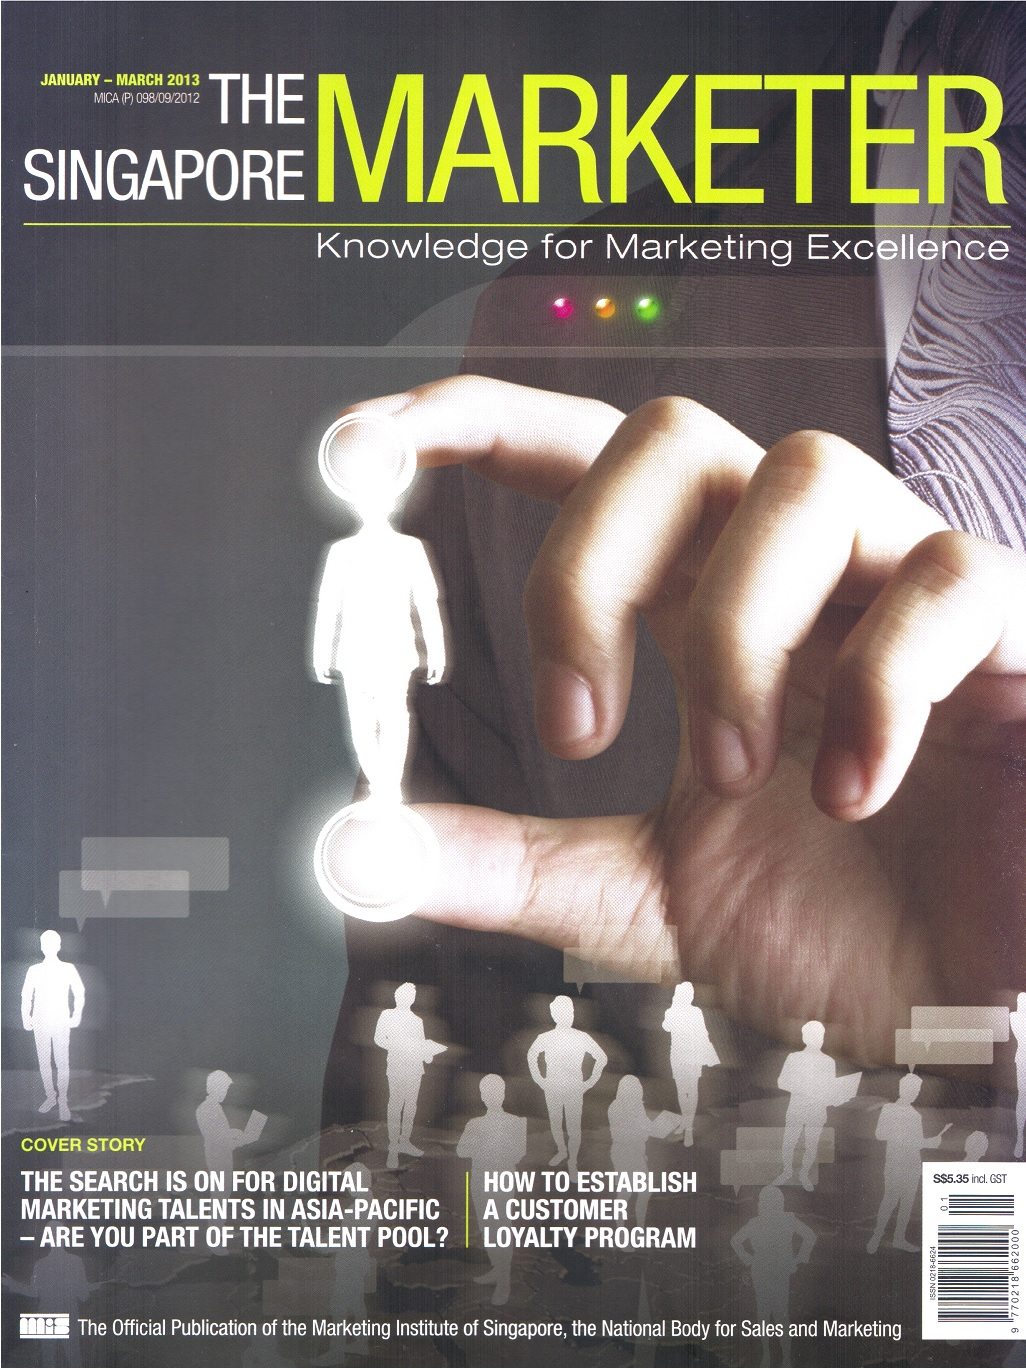 The Singapore Marketer (January~March)